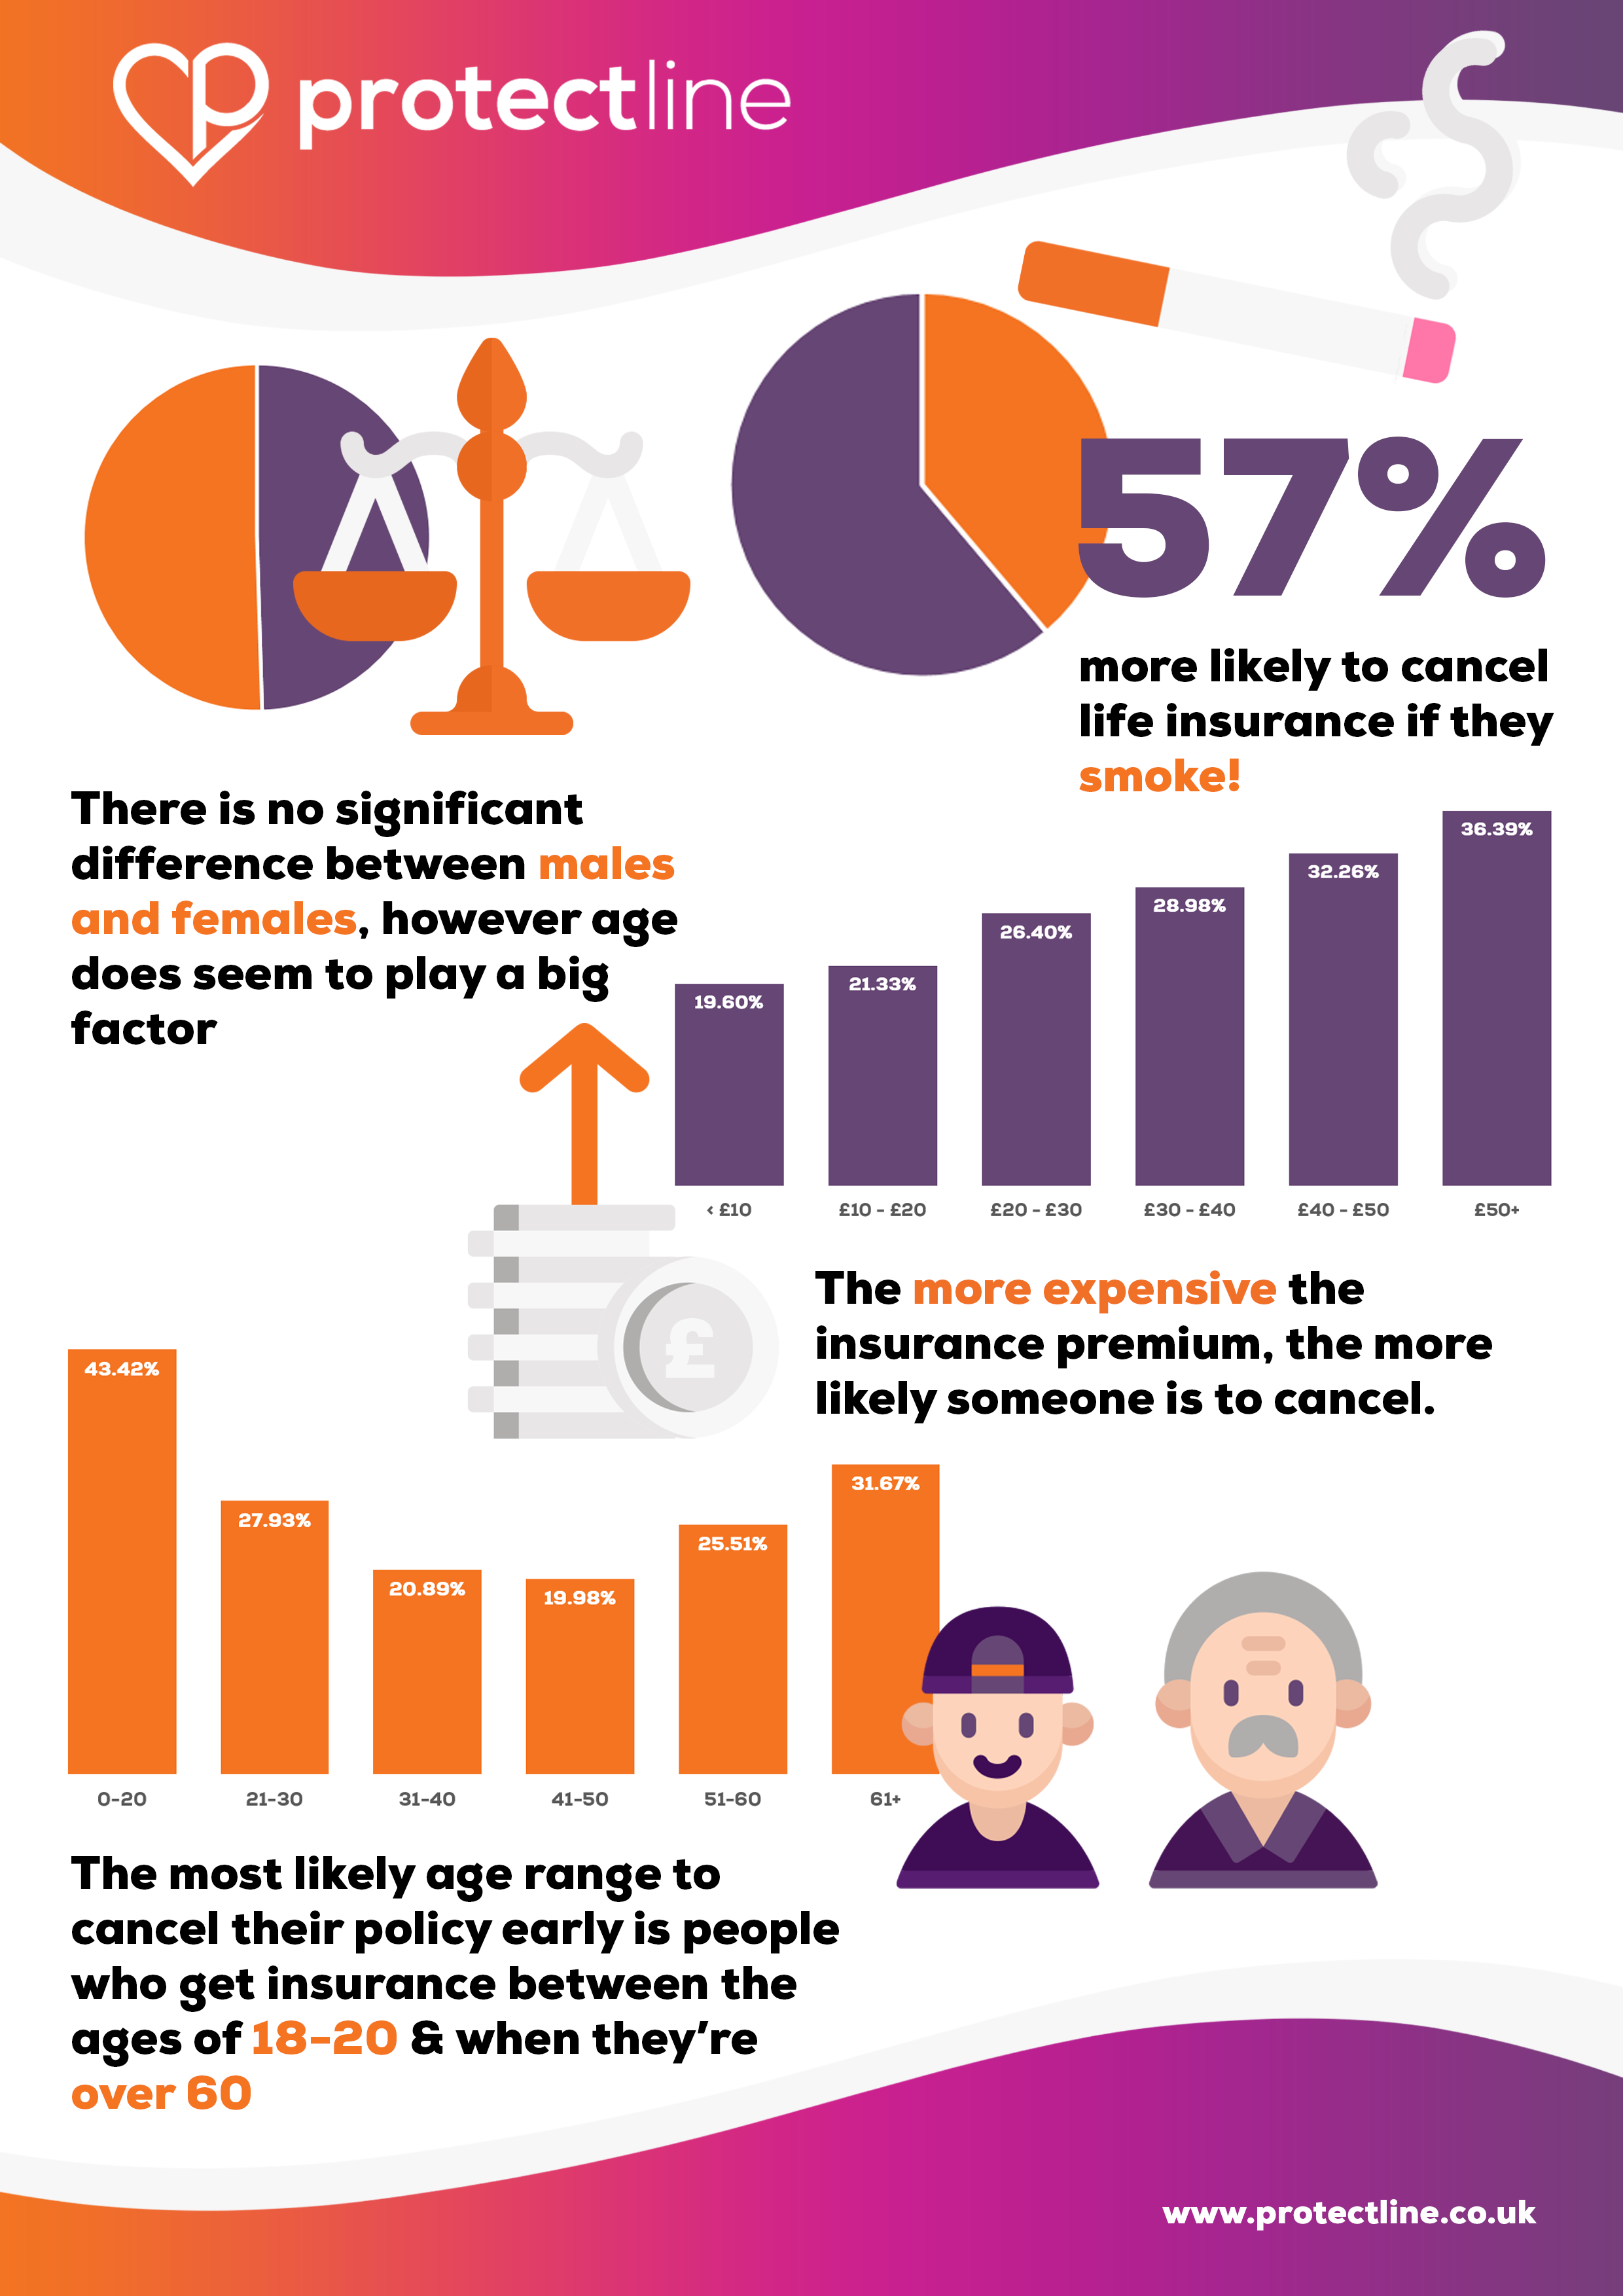 infographic - who is most likely to cancel life insurance